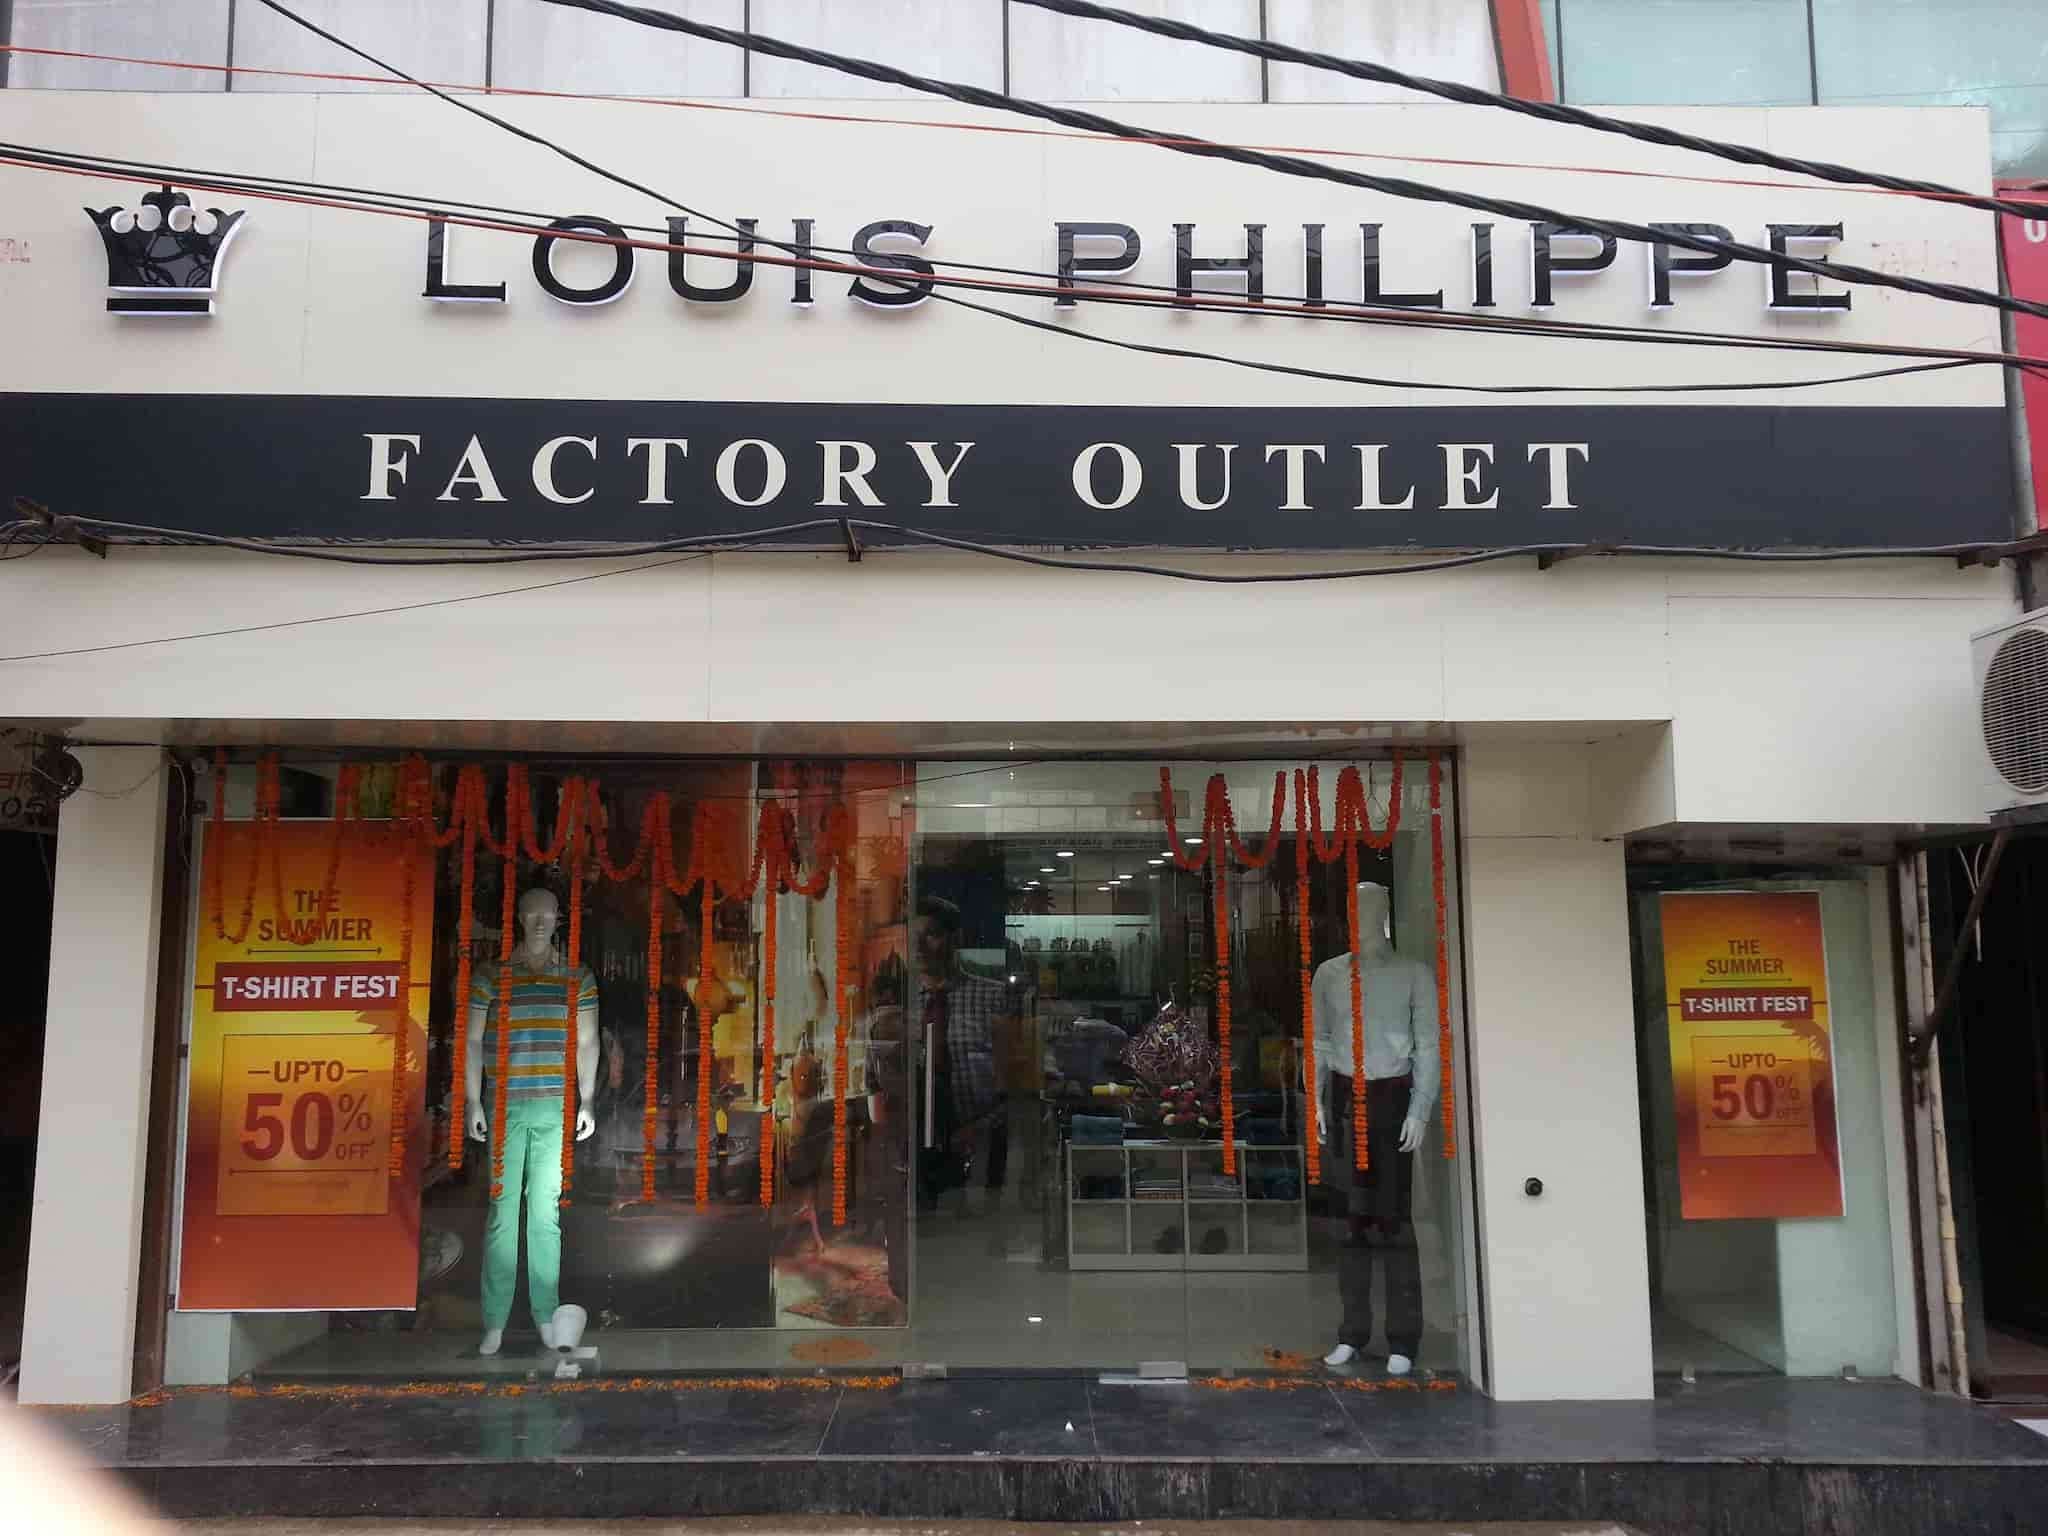 0421894fa8c Louis Philippe Factory Outlet Noida, Noida Sector 15 - Readymade ...